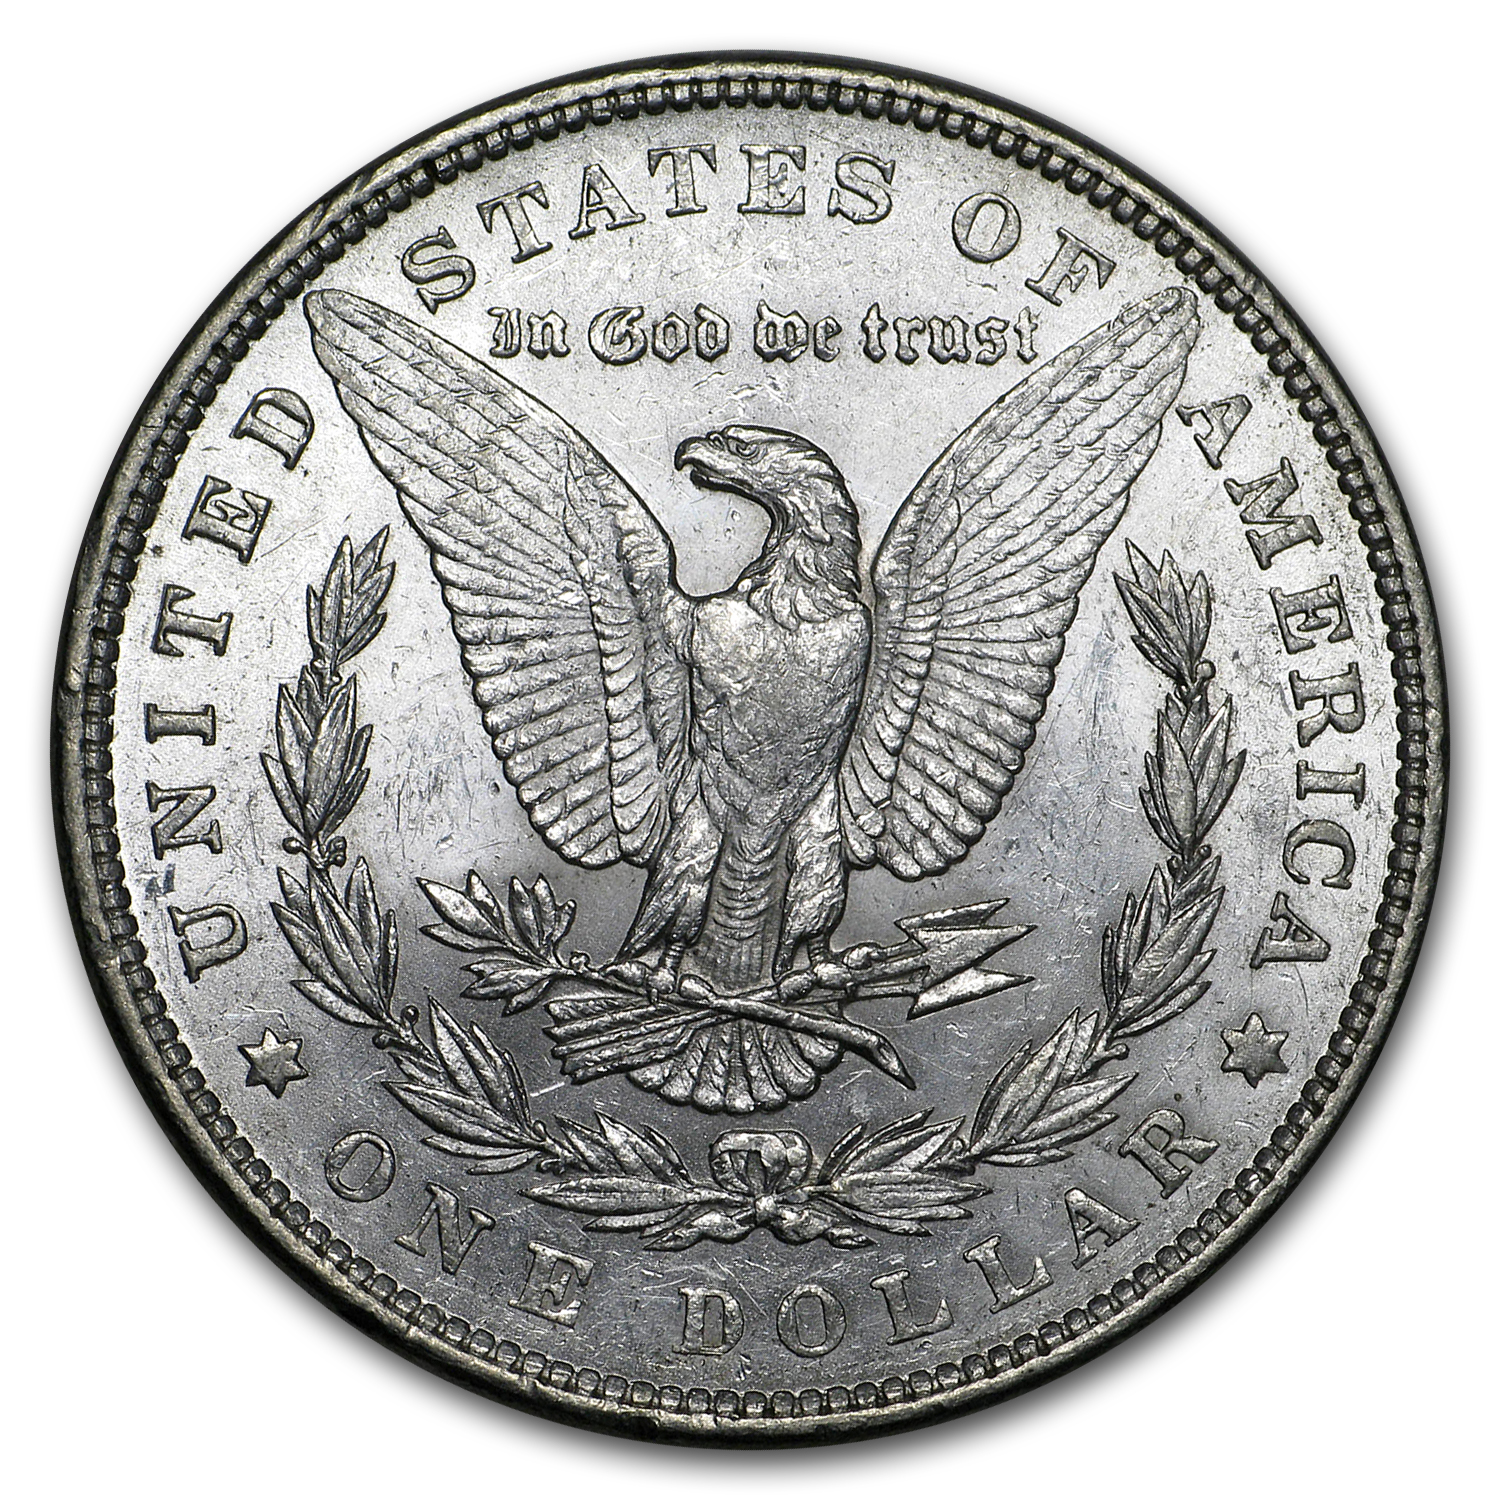 1878 Morgan Dollar - 7 Tailfeathers (Rev of 1879) AU-58